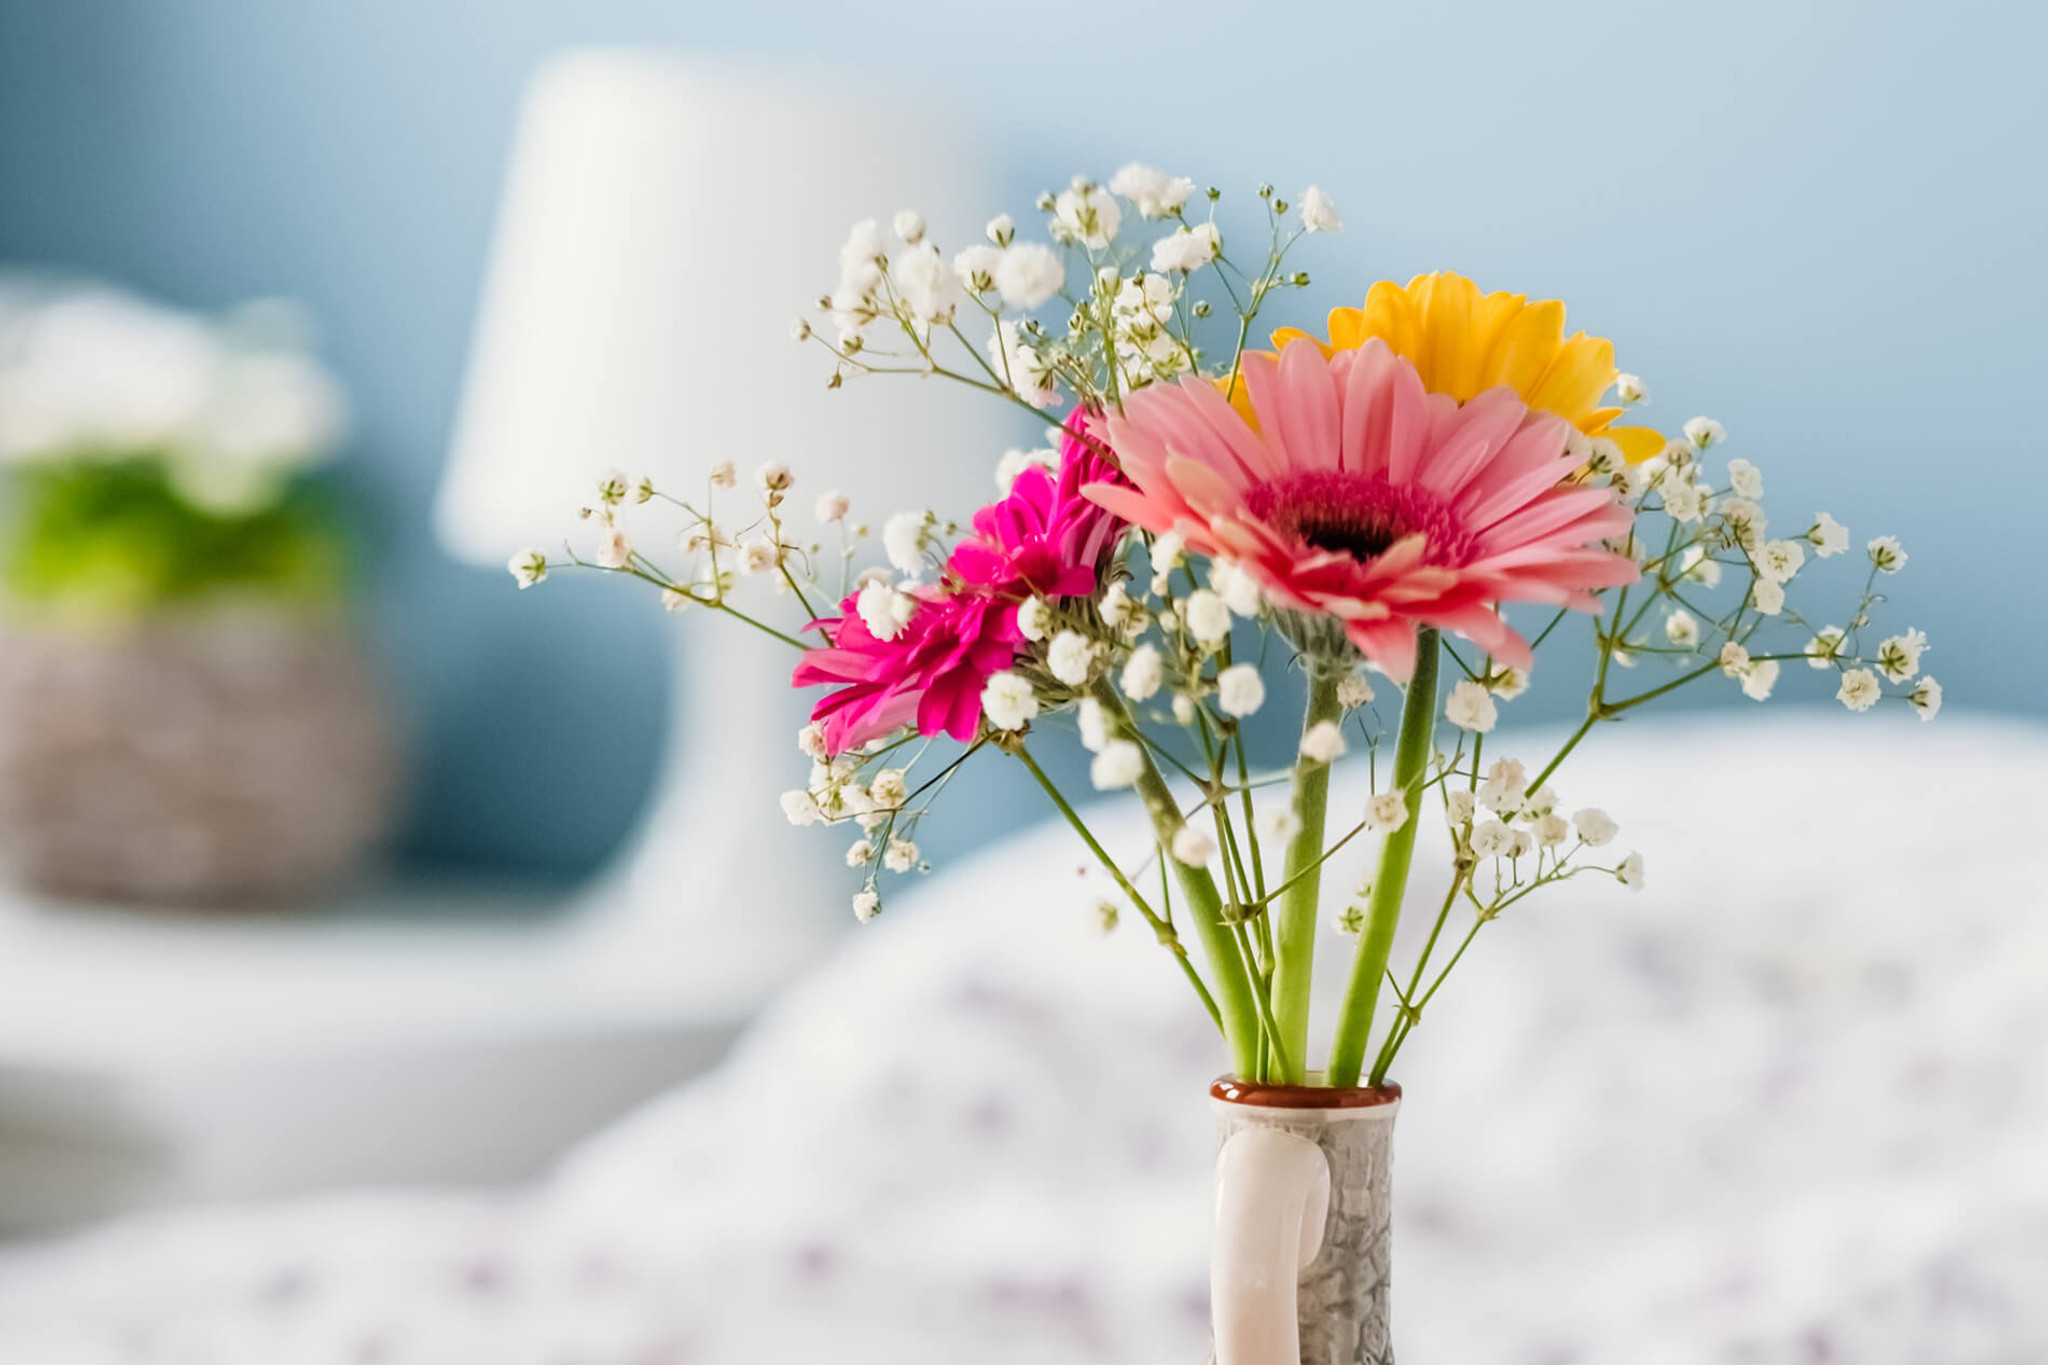 10 Ideas to Give Flowers in a Creative Way